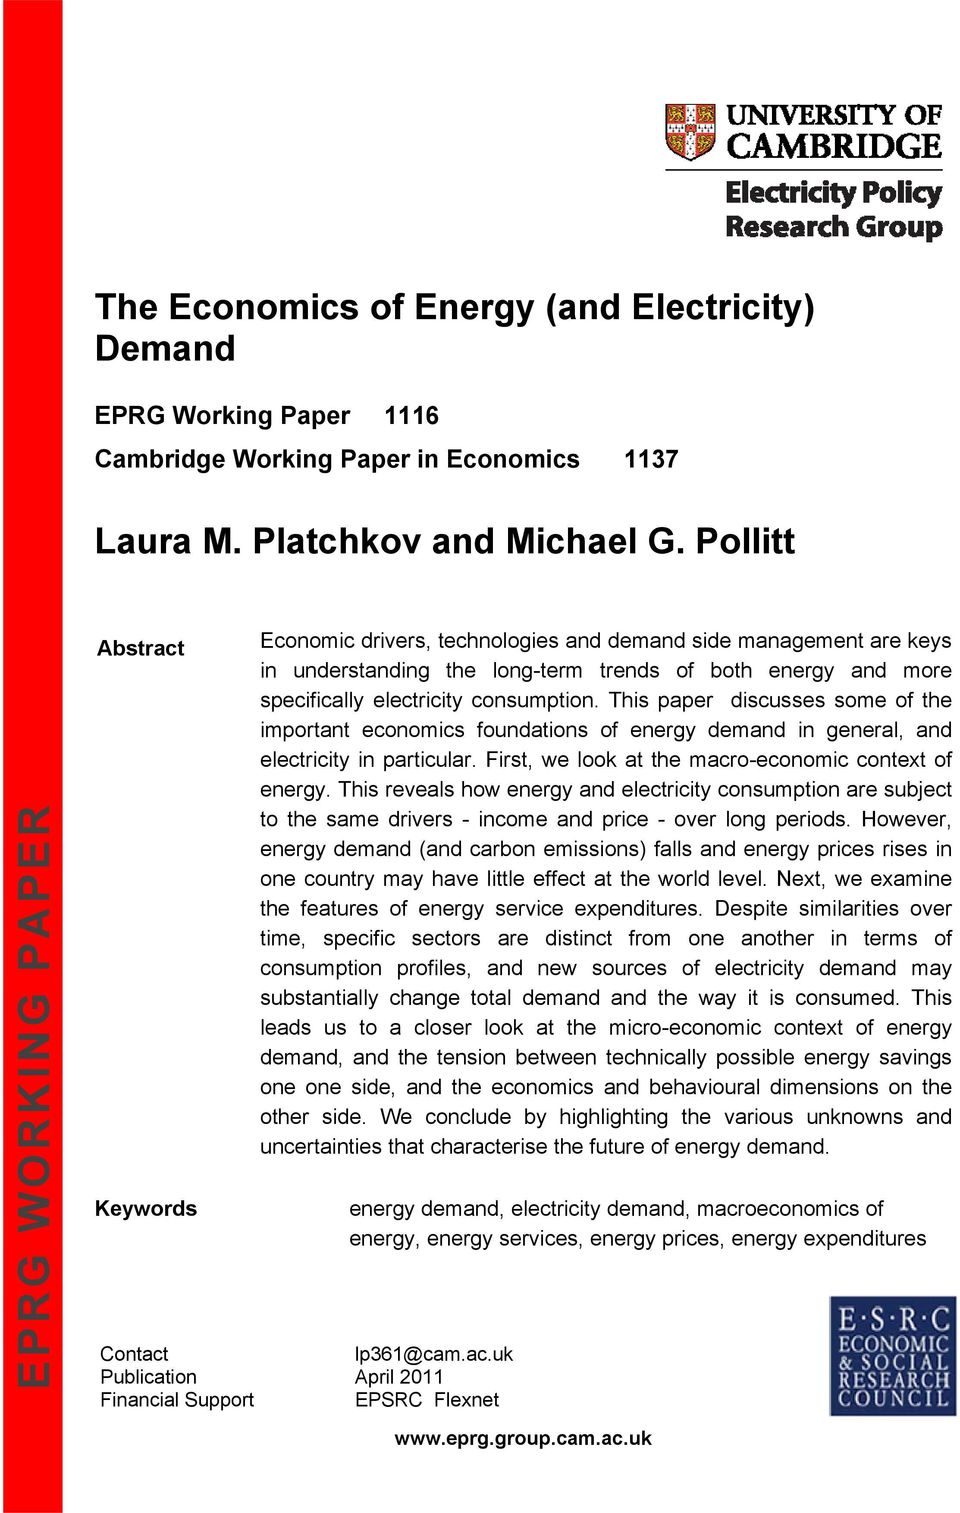 consumption. This paper discusses some of the important economics foundations of energy demand in general, and electricity in particular. First, we look at the macro-economic context of energy.